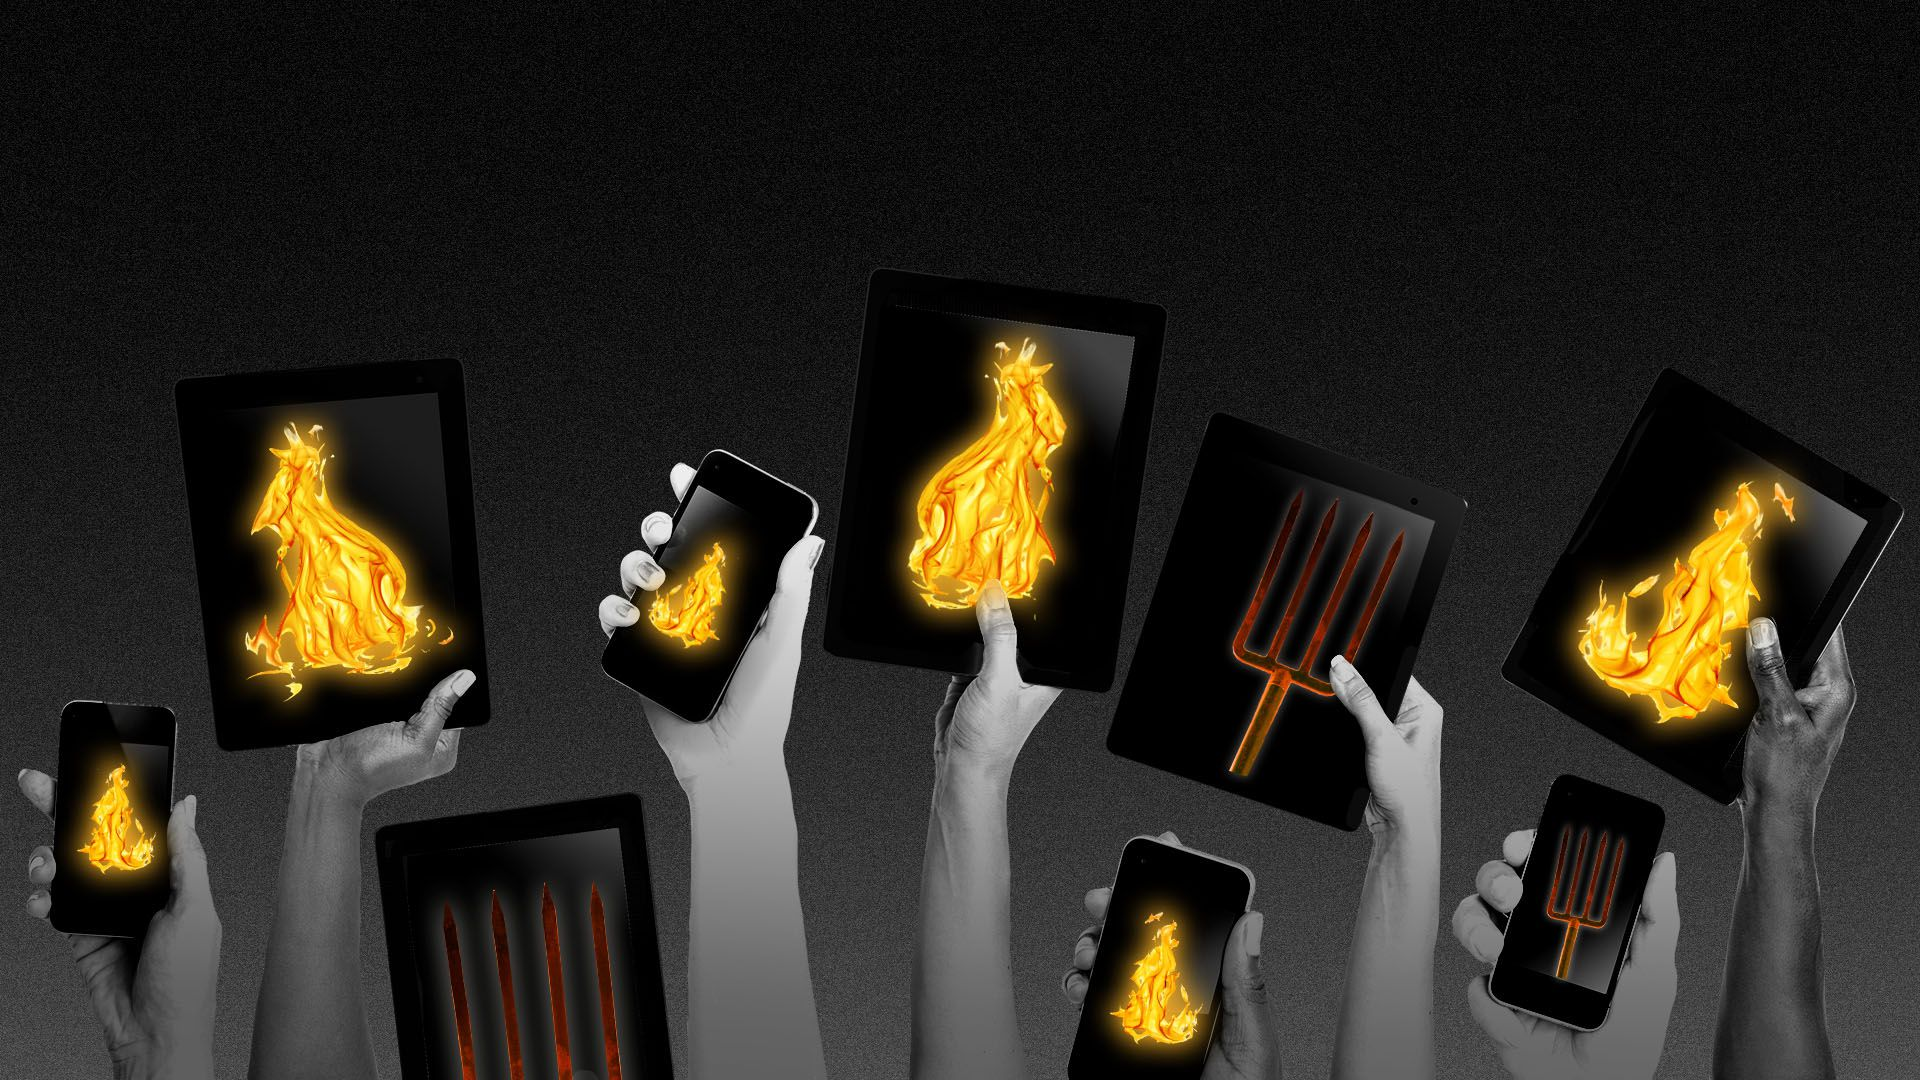 Illustration of a mob holding iPhones and iPads featuring images of pitchforks and fire